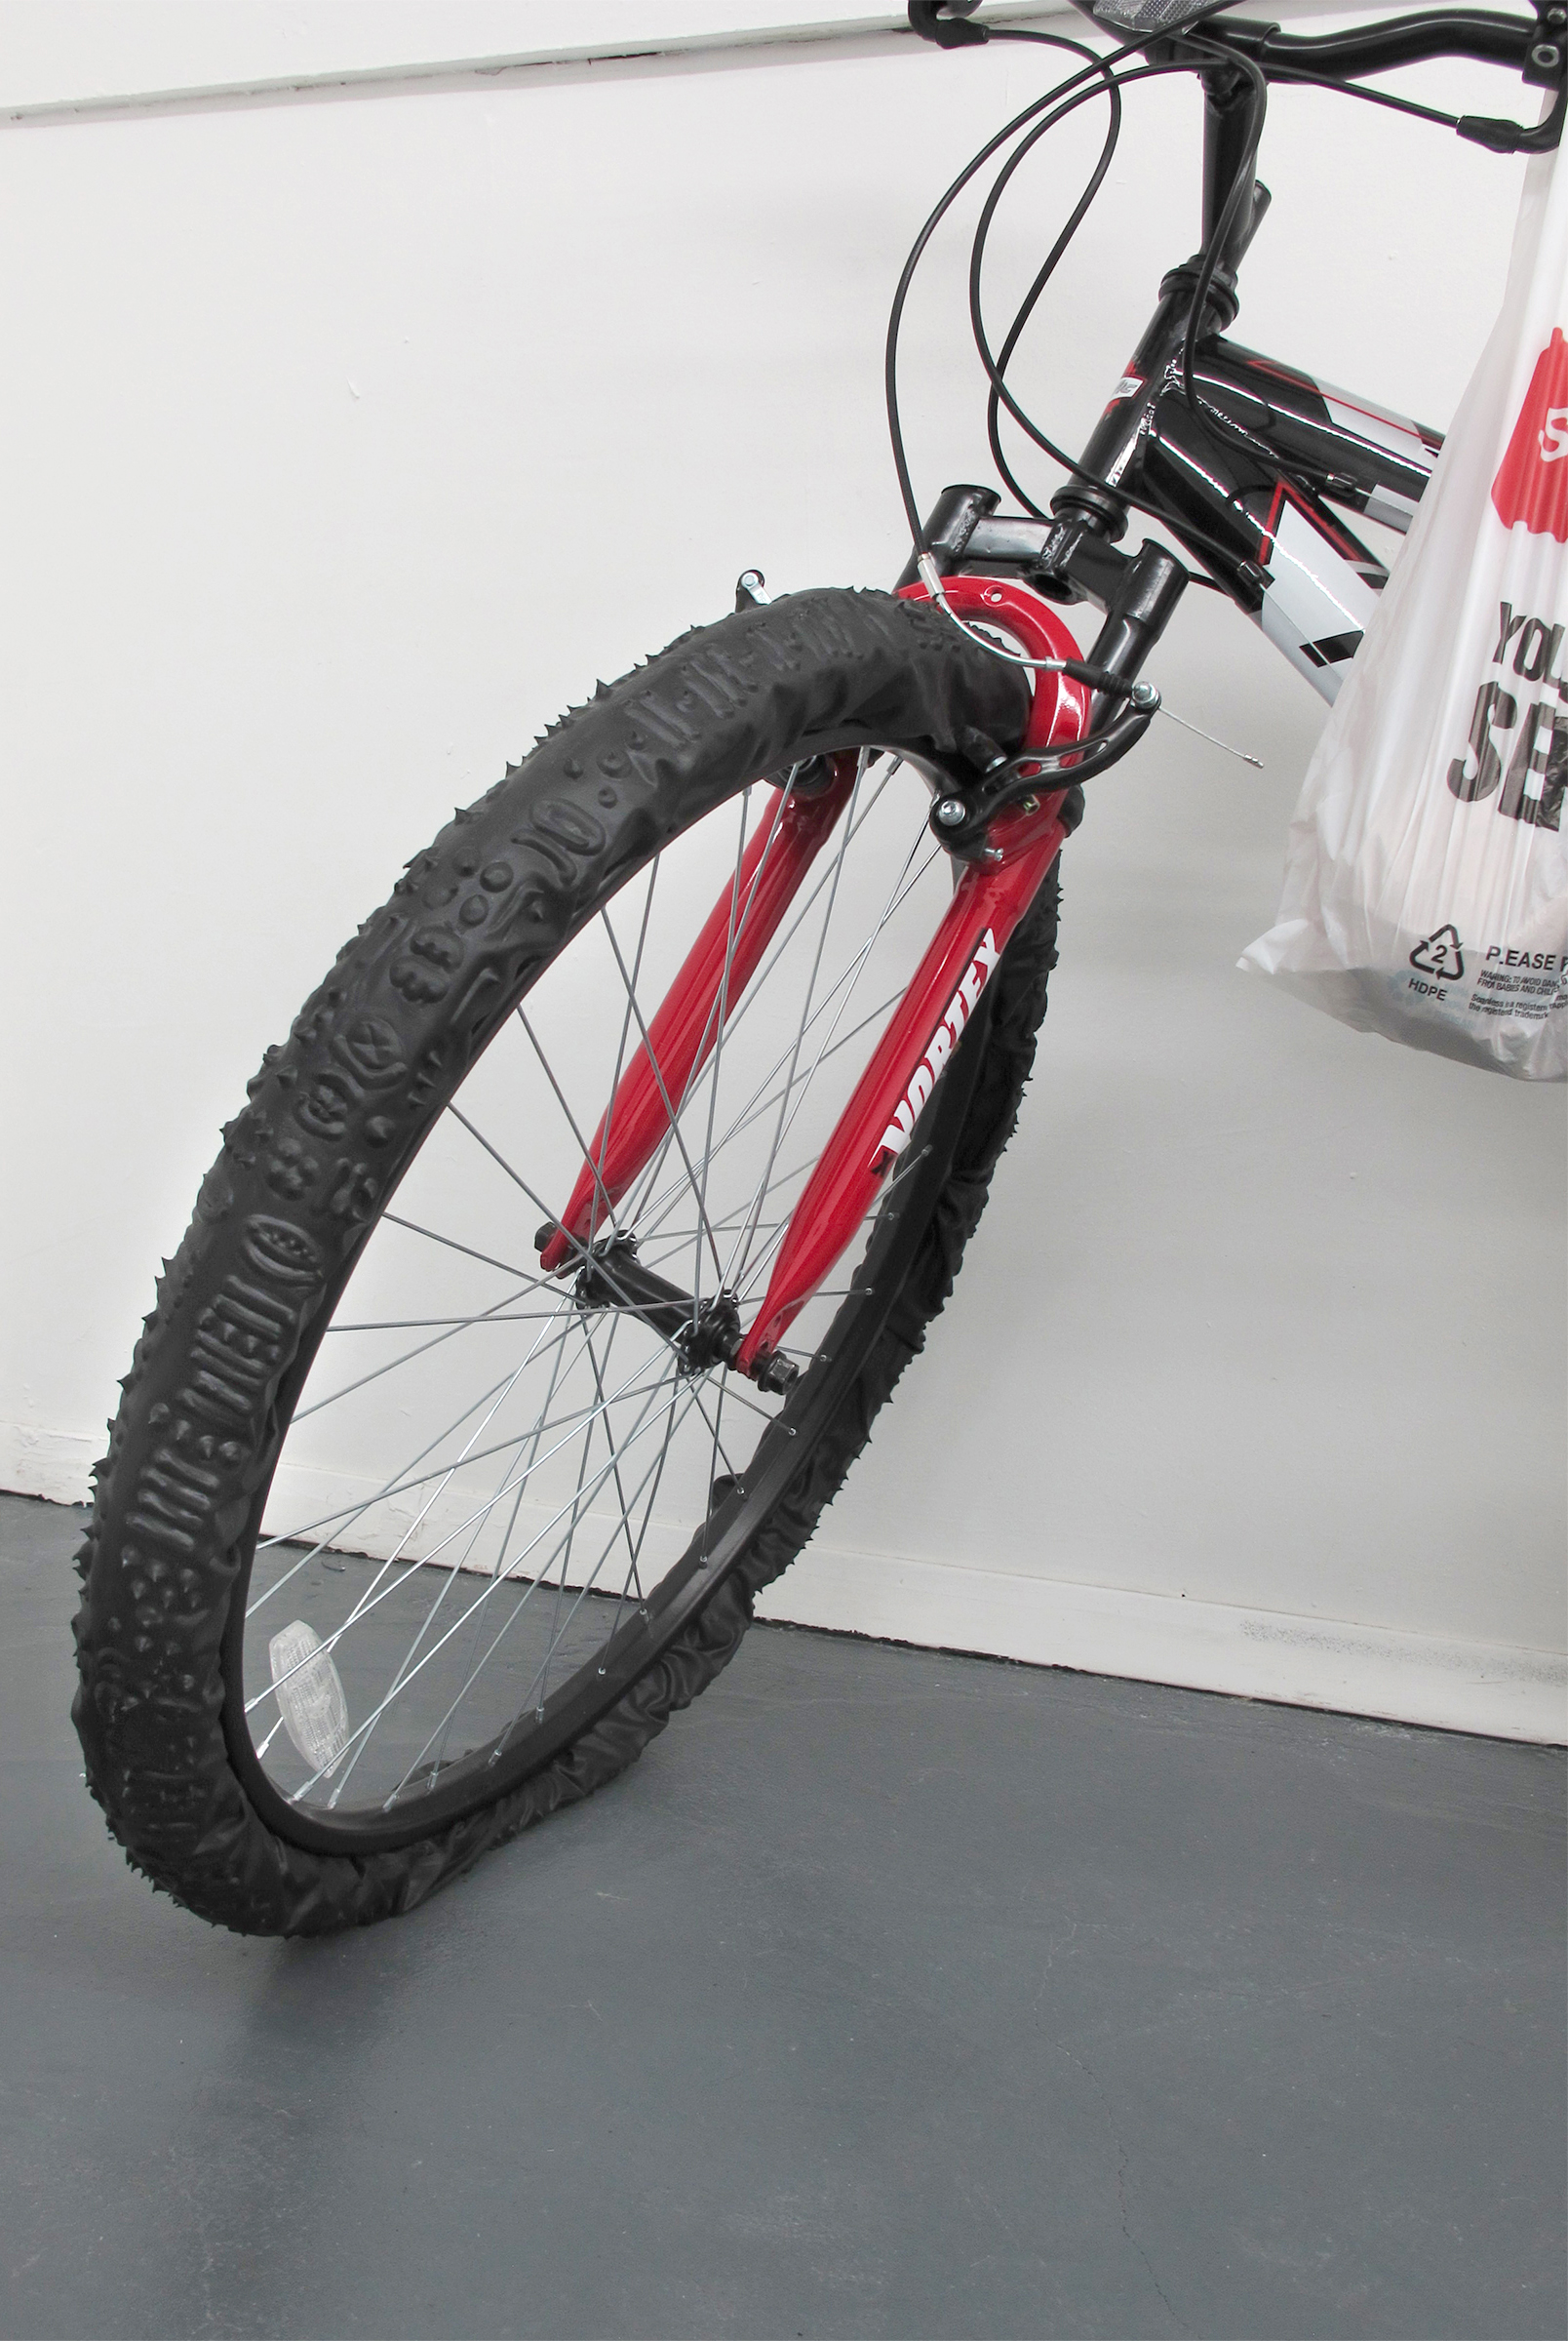 Michael Assiff, Bike  (Seamless, French Intervention in Mexico) , 2015, bicycle, plastic and grocery bags, dimensions variable